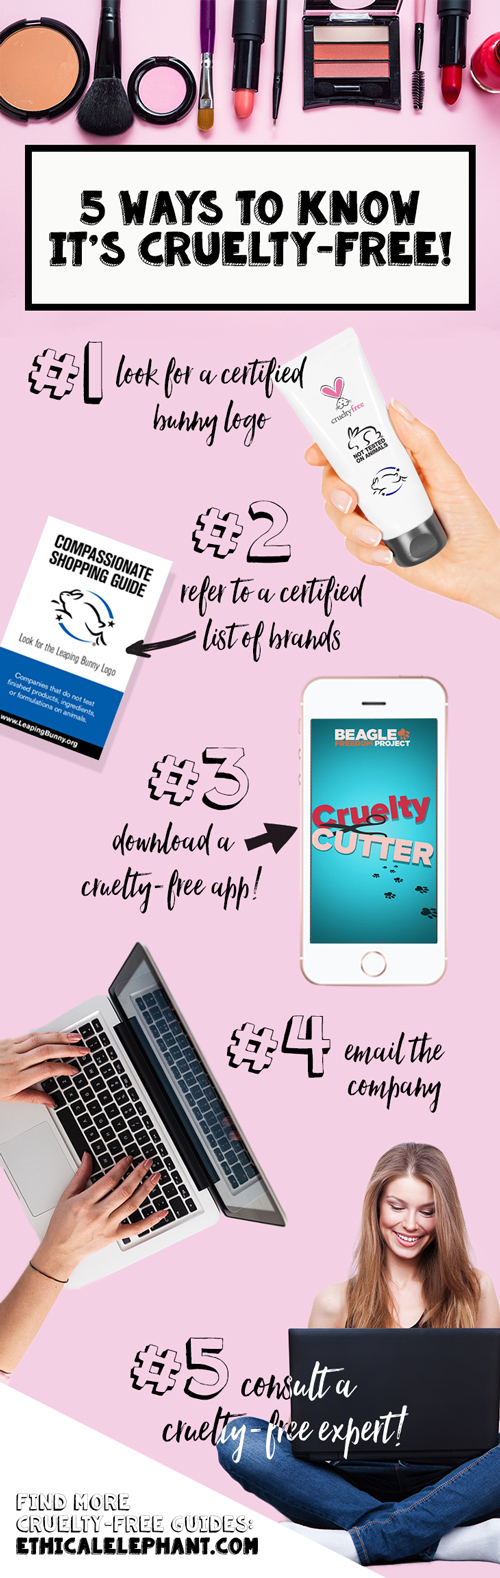 5 Super Simple Ways to Know When Cosmetics are Cruelty-Free!